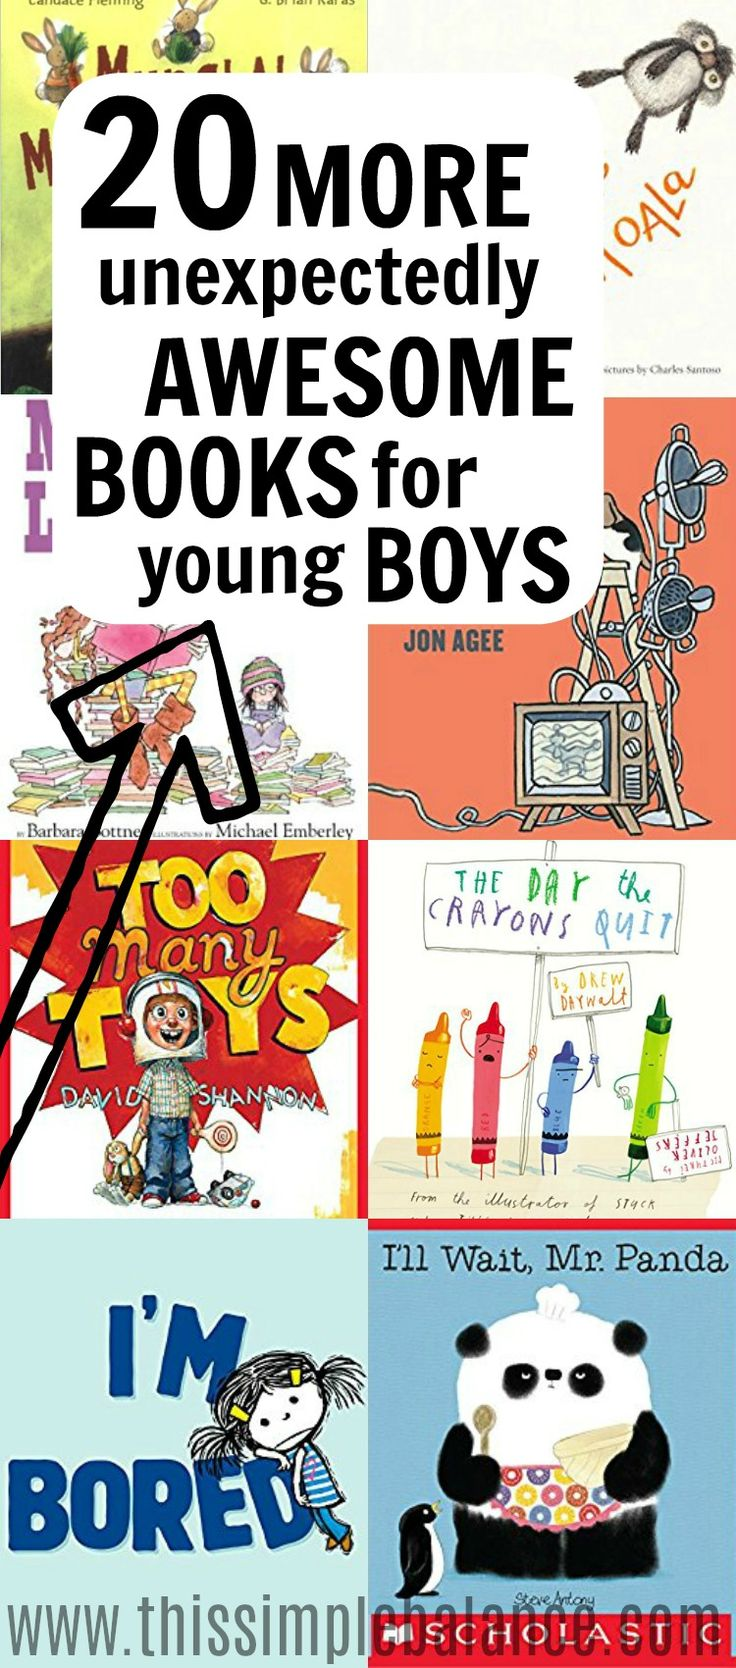 We LOVE making book lists to make your library trips easier. These books were huge hits with our young boys.! Many of them I would not have guessed would the picture books they asked for over and over again. And that's why these lists are called unexpectedly awesome books for young boys. We hope your boys enjoy these books as much as ours did! #booklists #booksforboys